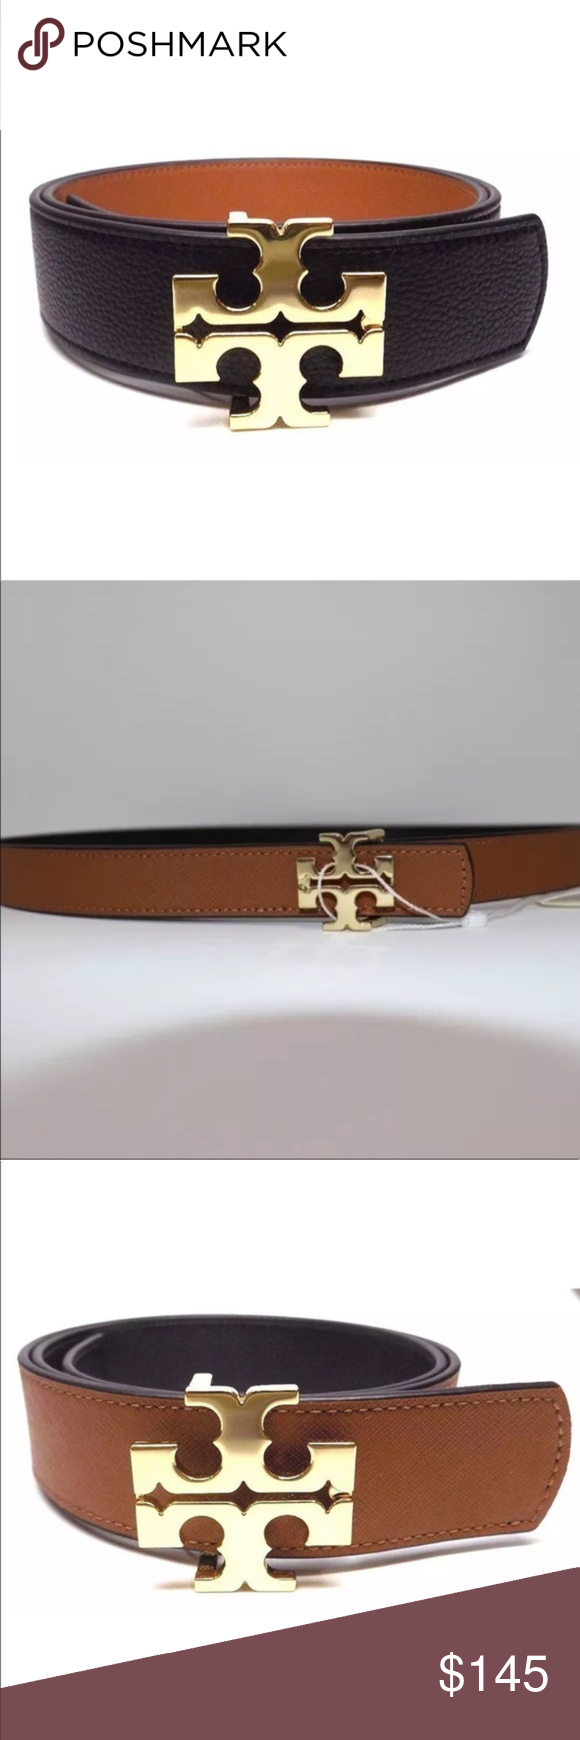 fe8d5b17c012 TORY BURCH Reversible Logo Belt 1.5